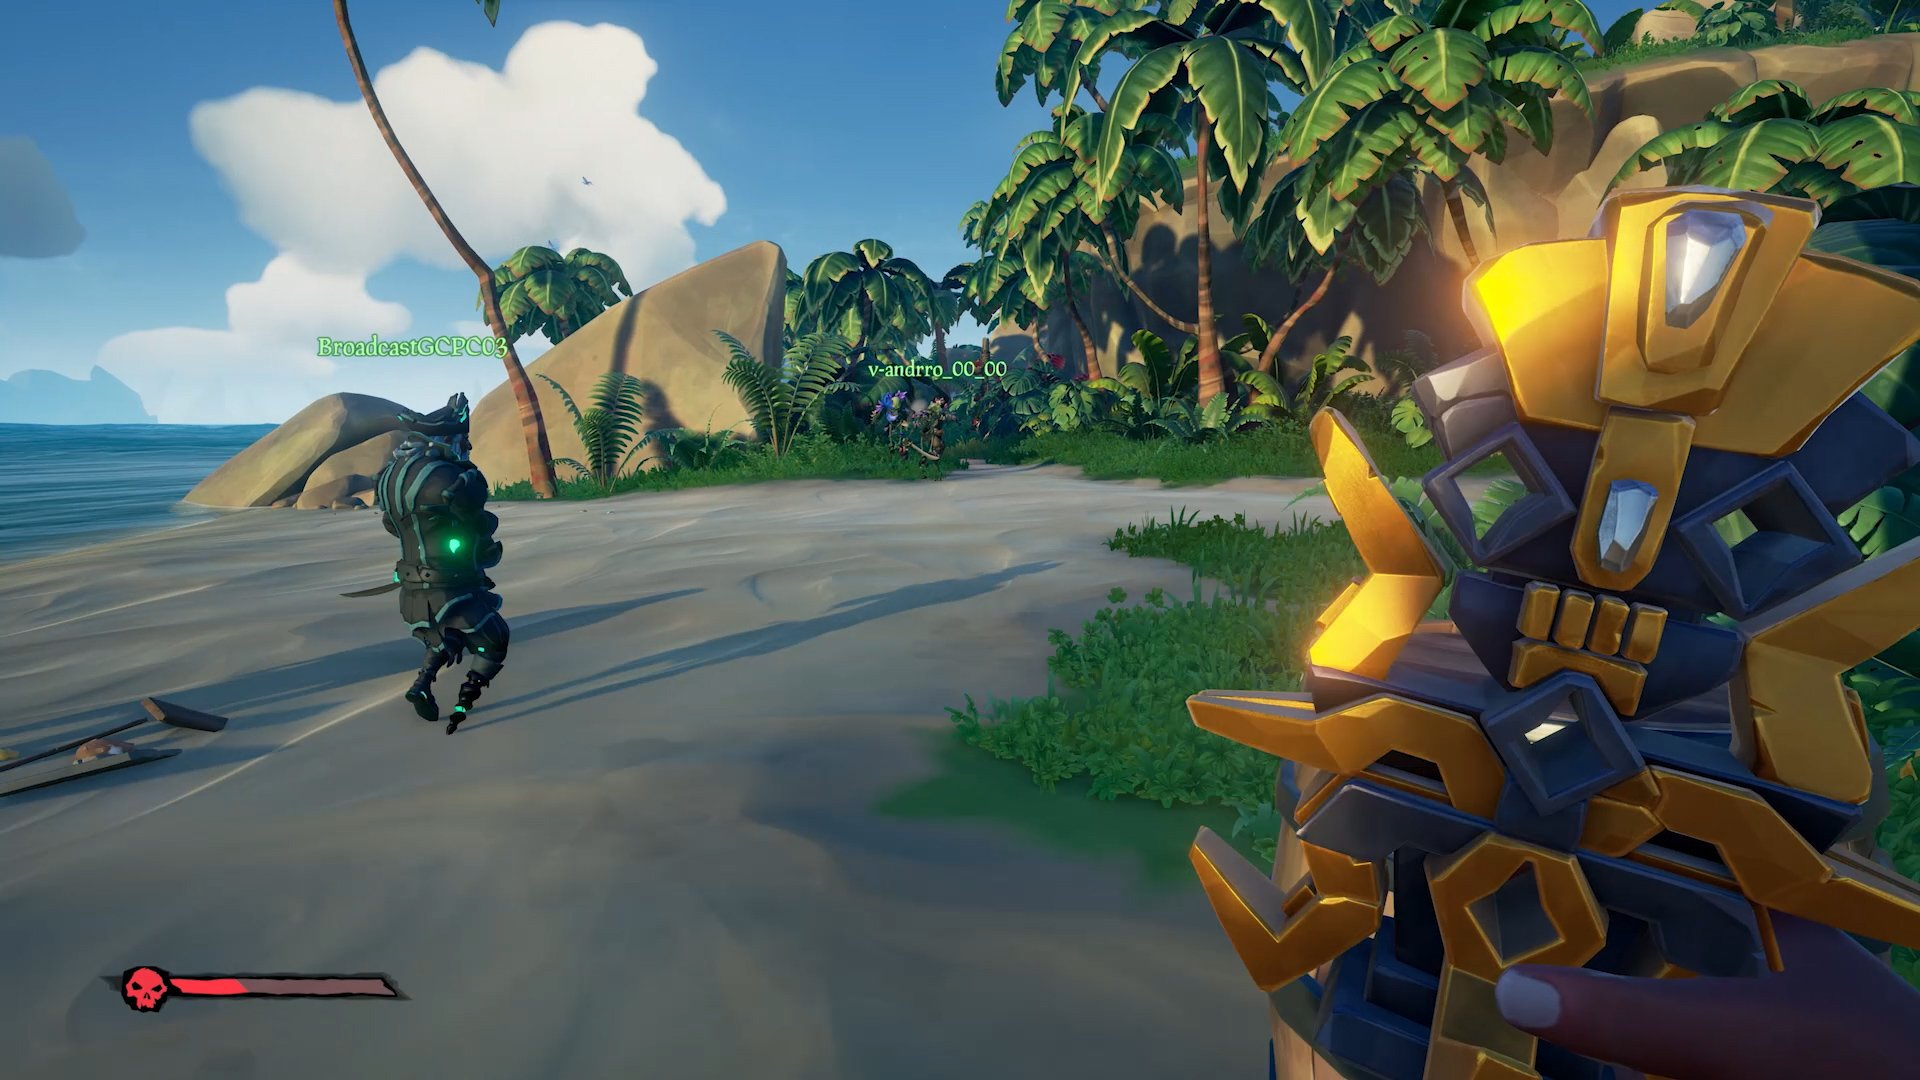 Sea of Thieves interview: Pets, private servers, and sequels